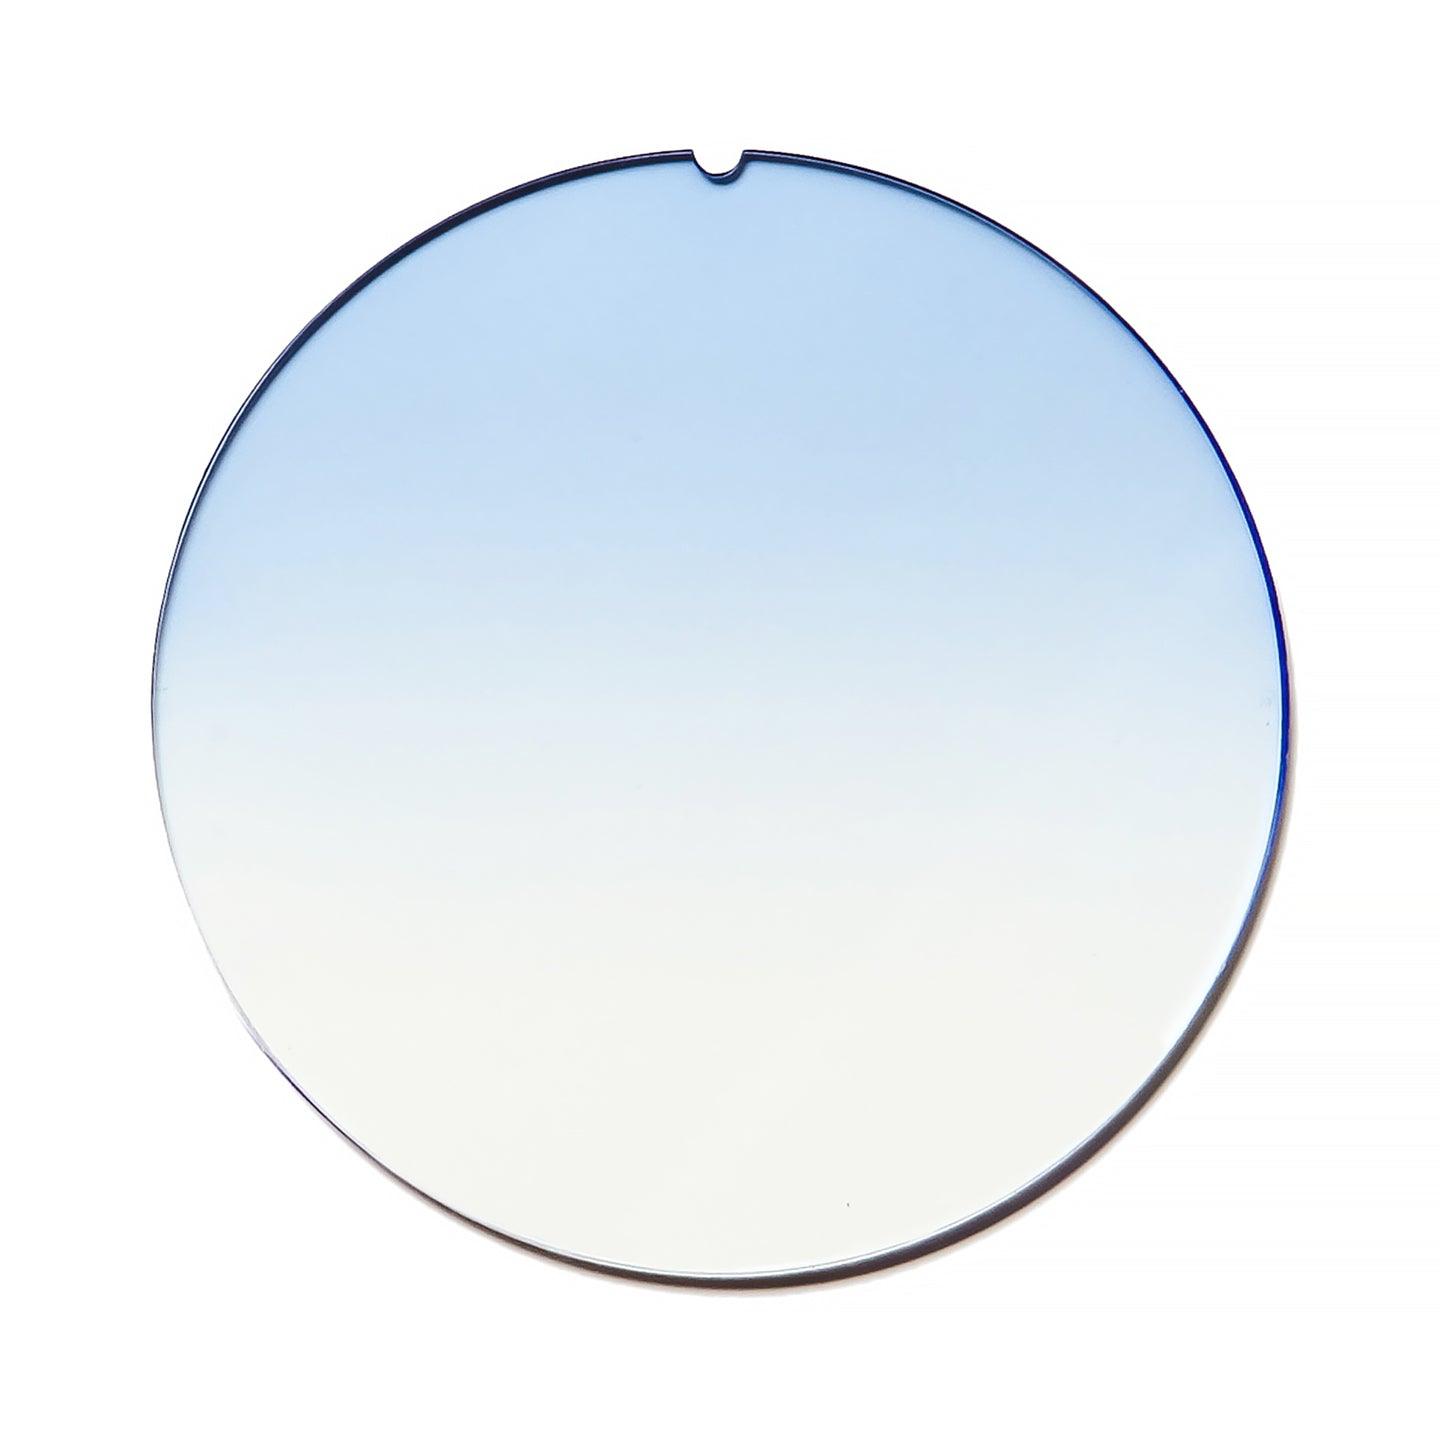 086 - Light Blue Gradient Flat Lens